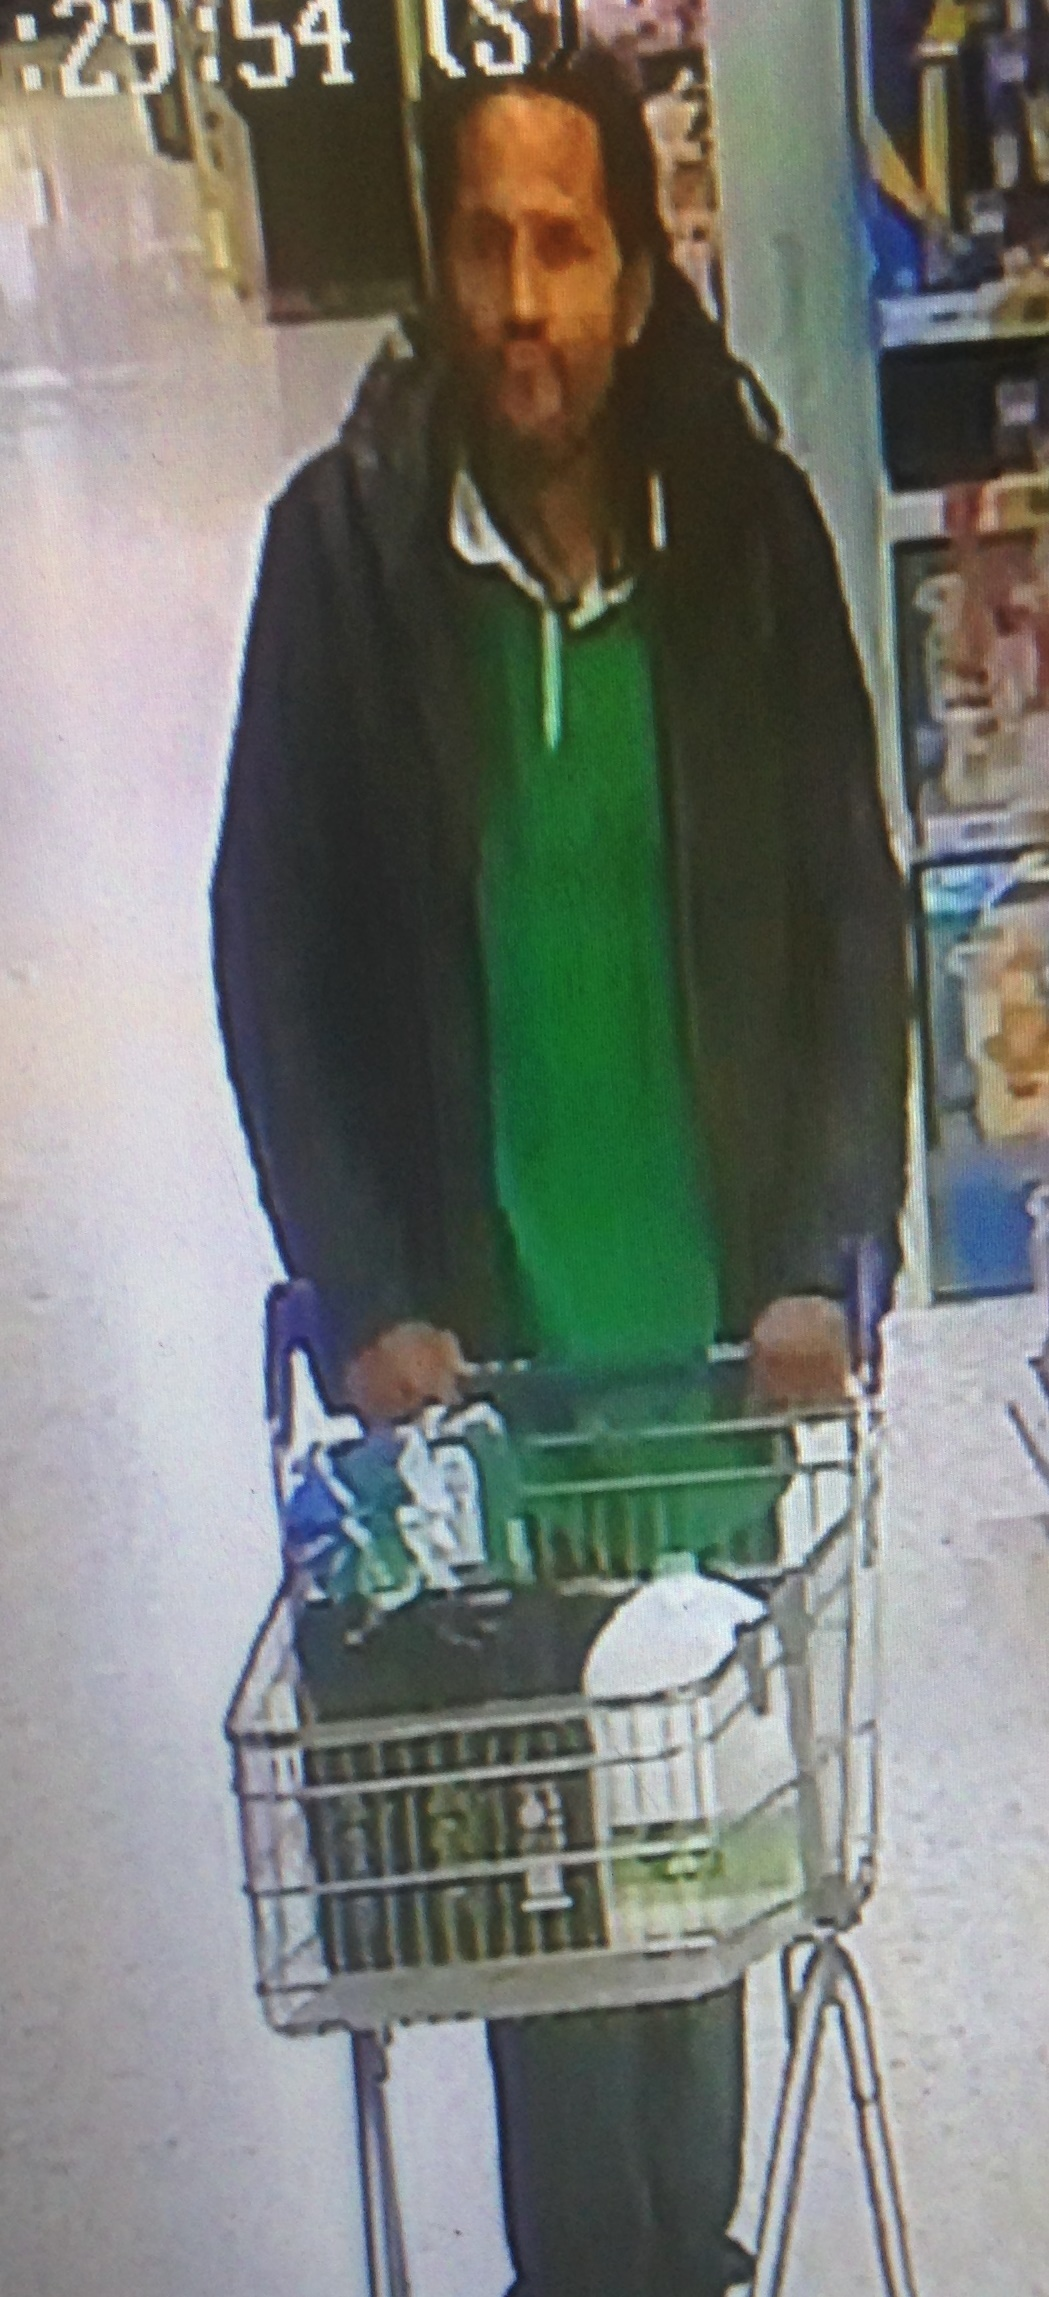 CCTV image of a man police would like to speak to following attempted thefts at Tesco stores